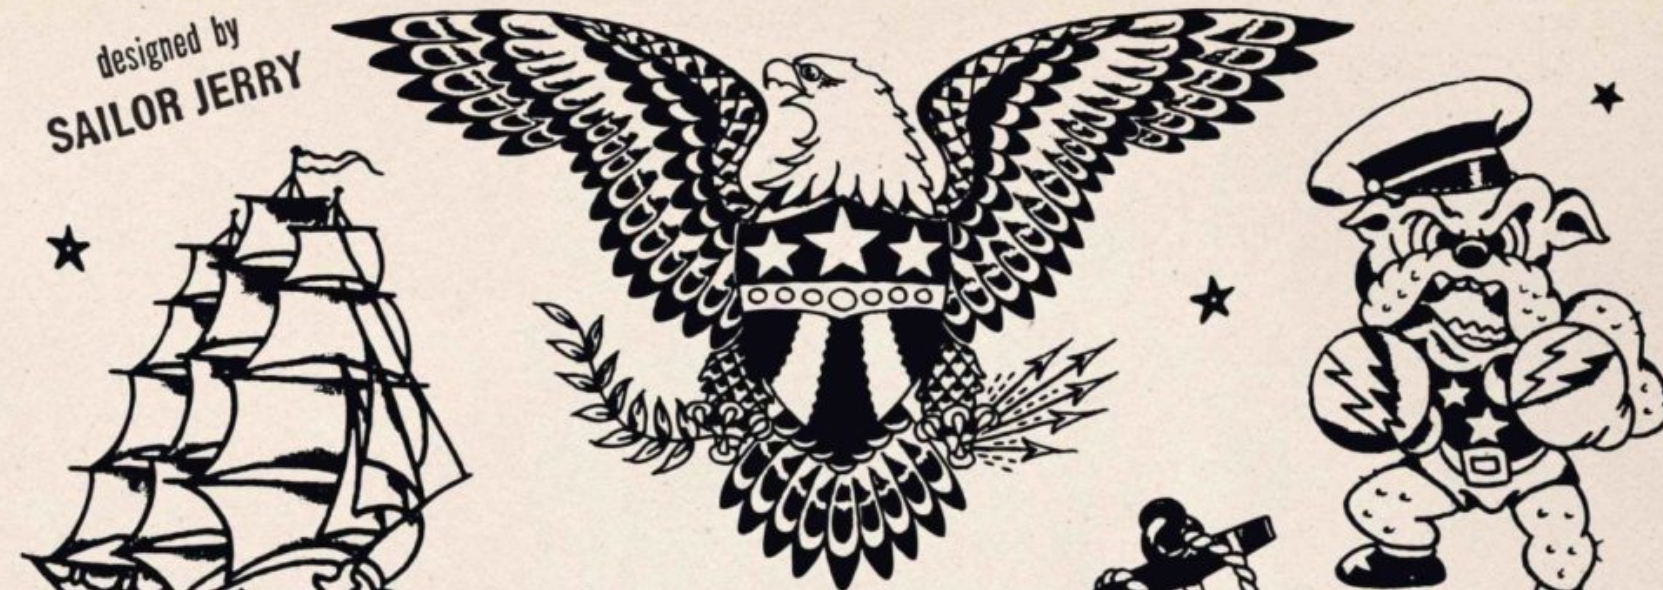 who is RGBC - Sailor Jerry